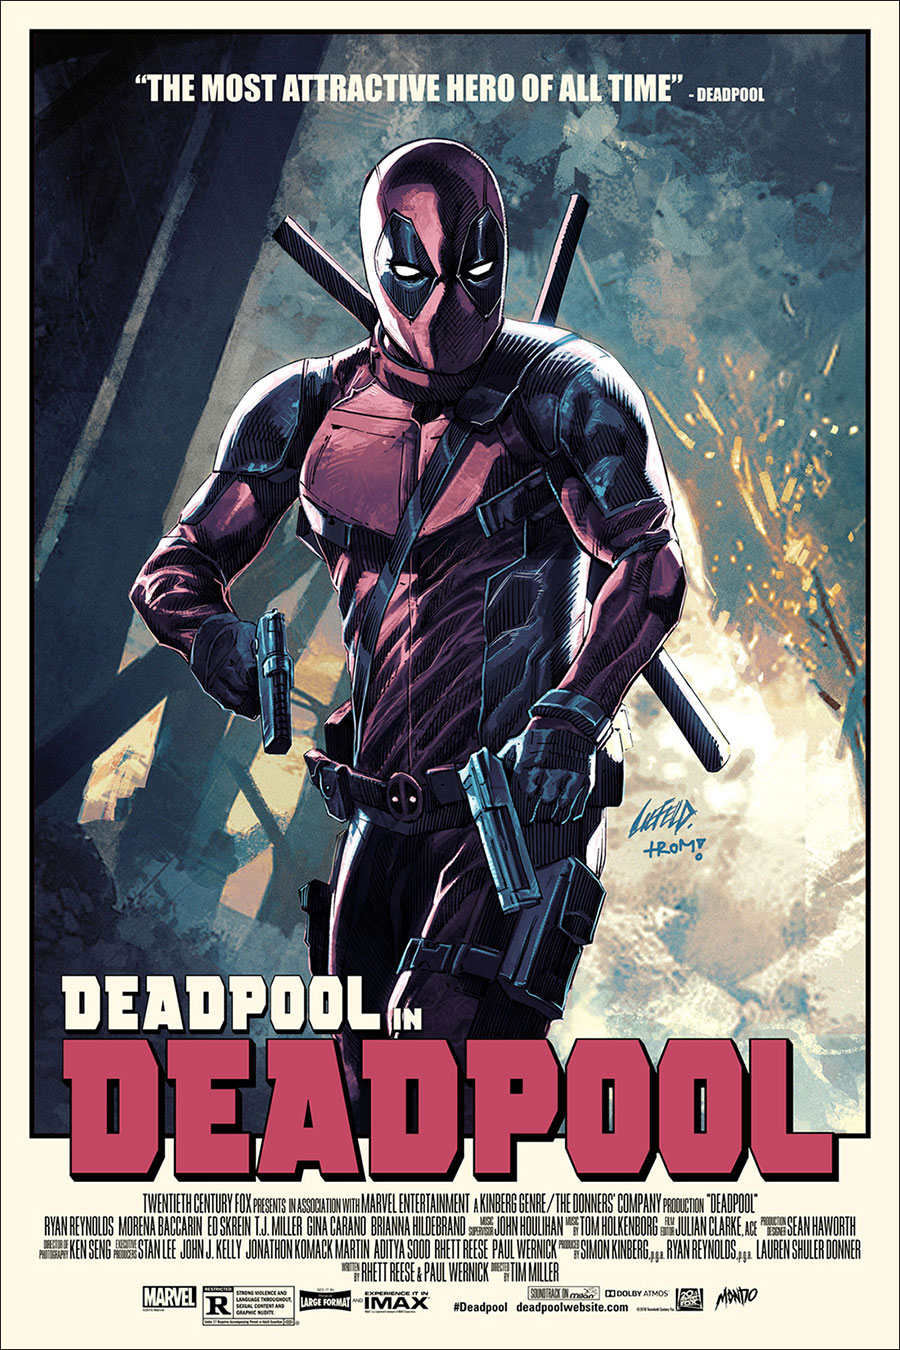 the creator of deadpool made an awesome mondo poster